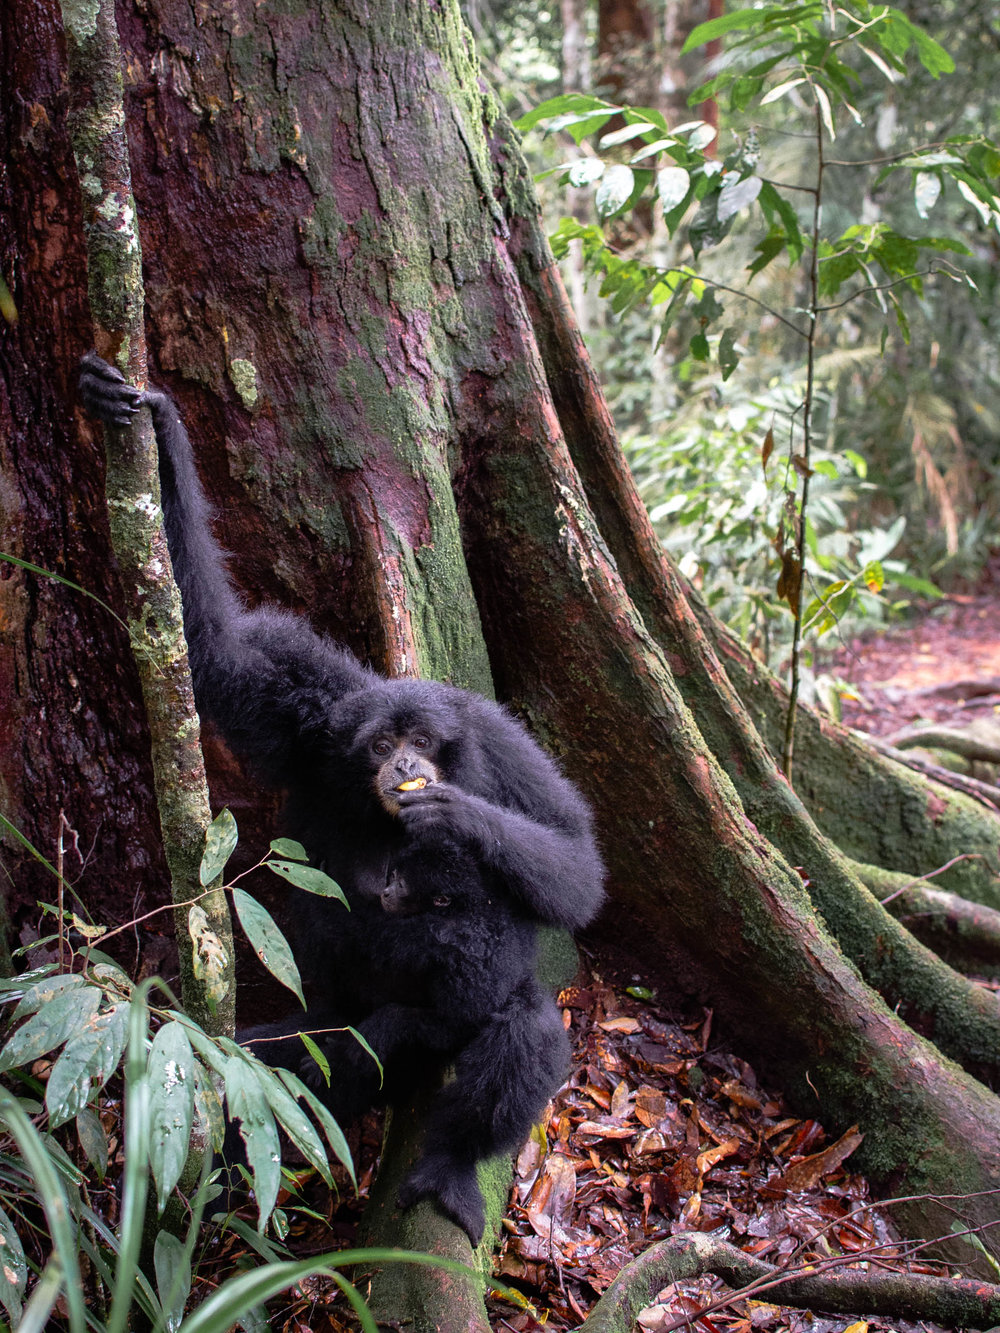 Mother siamang monkey and her baby | Orangutan Trekking in the Jungles of Sumatra